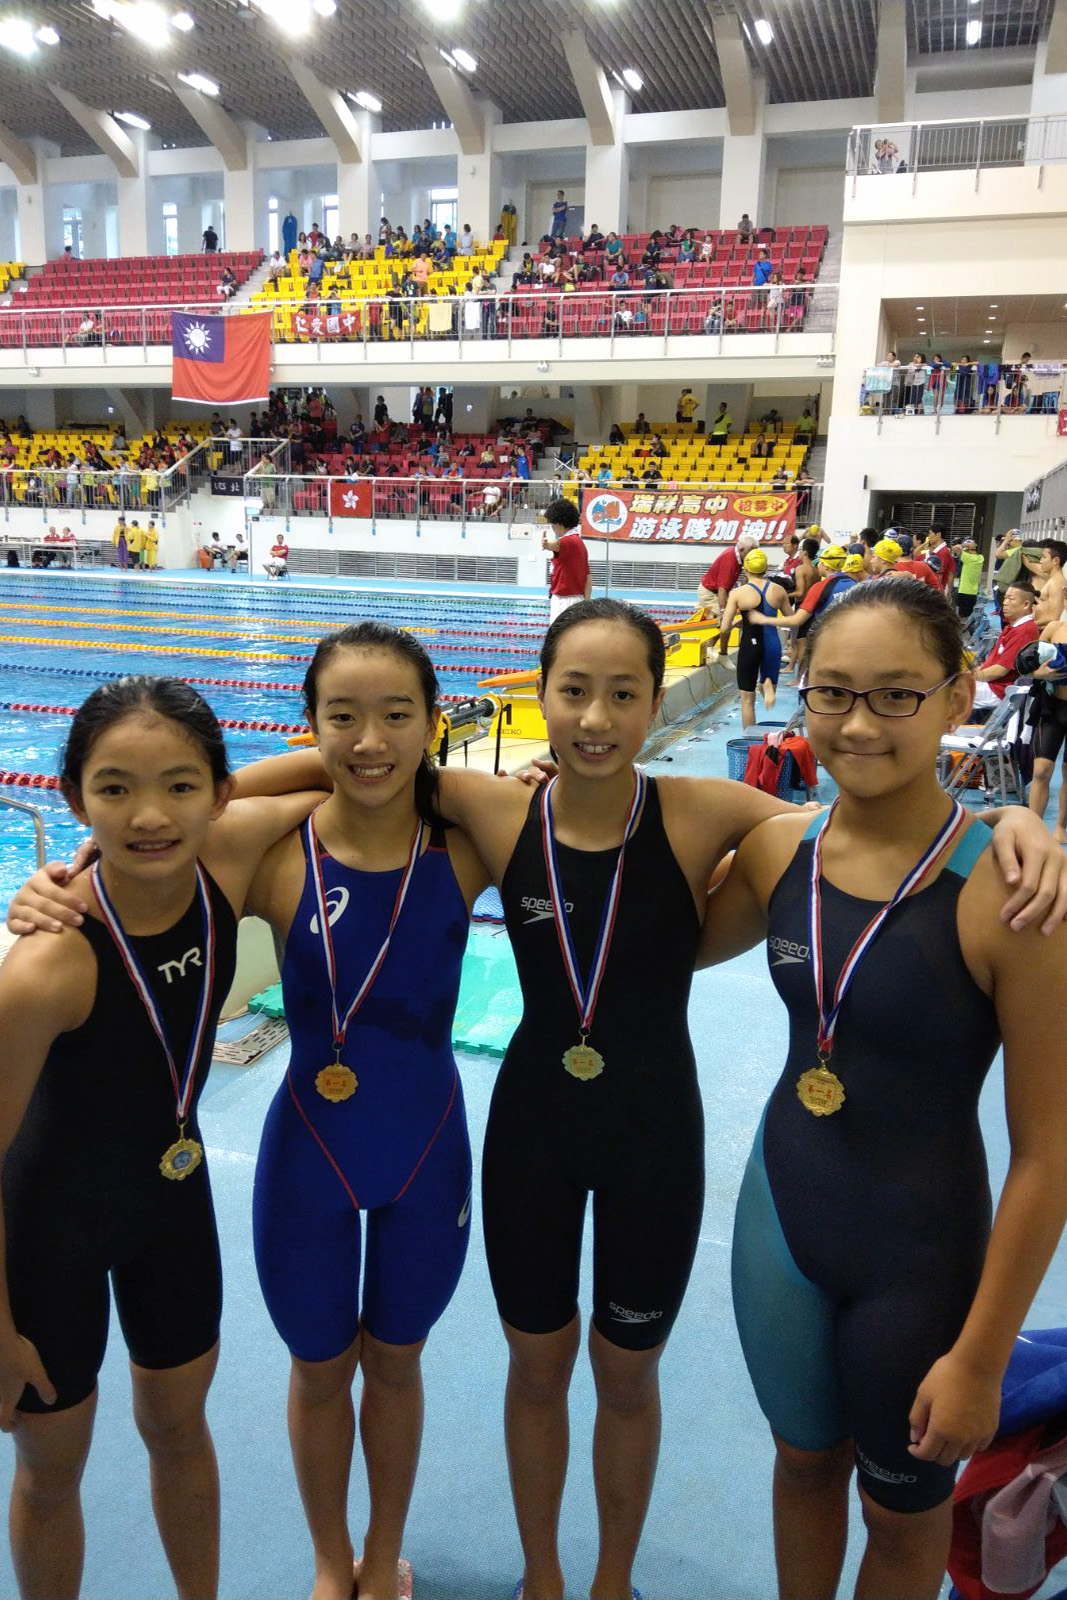 Win Tin Swimming Club - Taiwan Age Group Swimming Championships 6